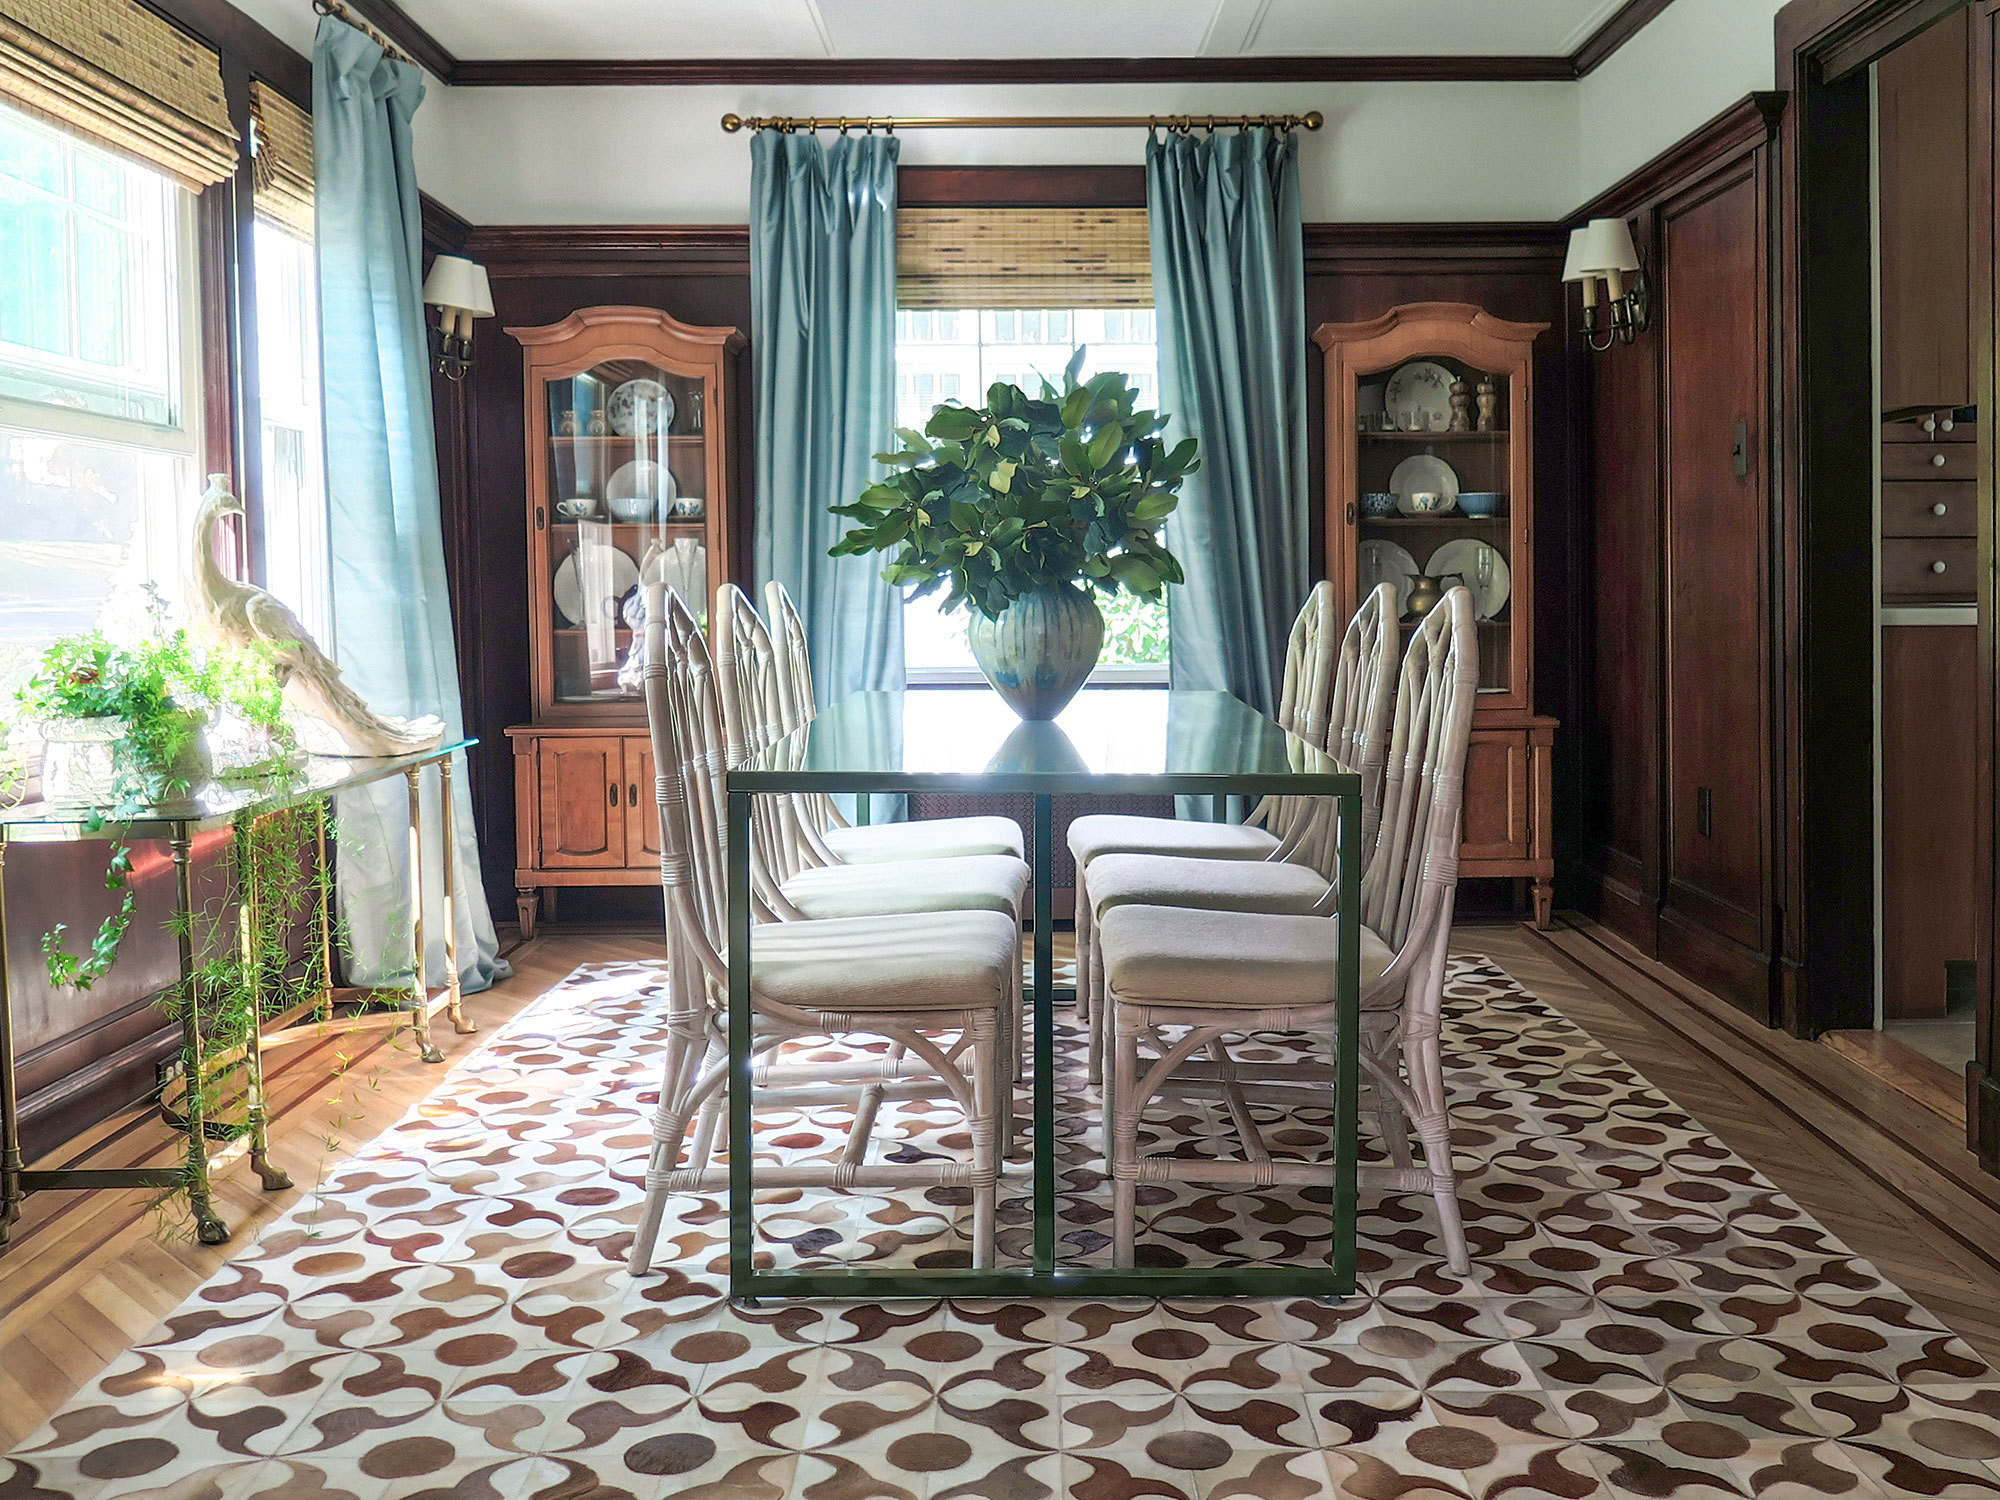 Jill Danyelle of Verdoiergave this1920s home in South Orange, New Jersey, a modern-day facelift, whilepreservingits historic charms. In the dining room, wood-paneled walls are balanced by a streamlinedtable from Blu Dot, a patterned hide rug, and a fanciful faux Peacock sculpture.